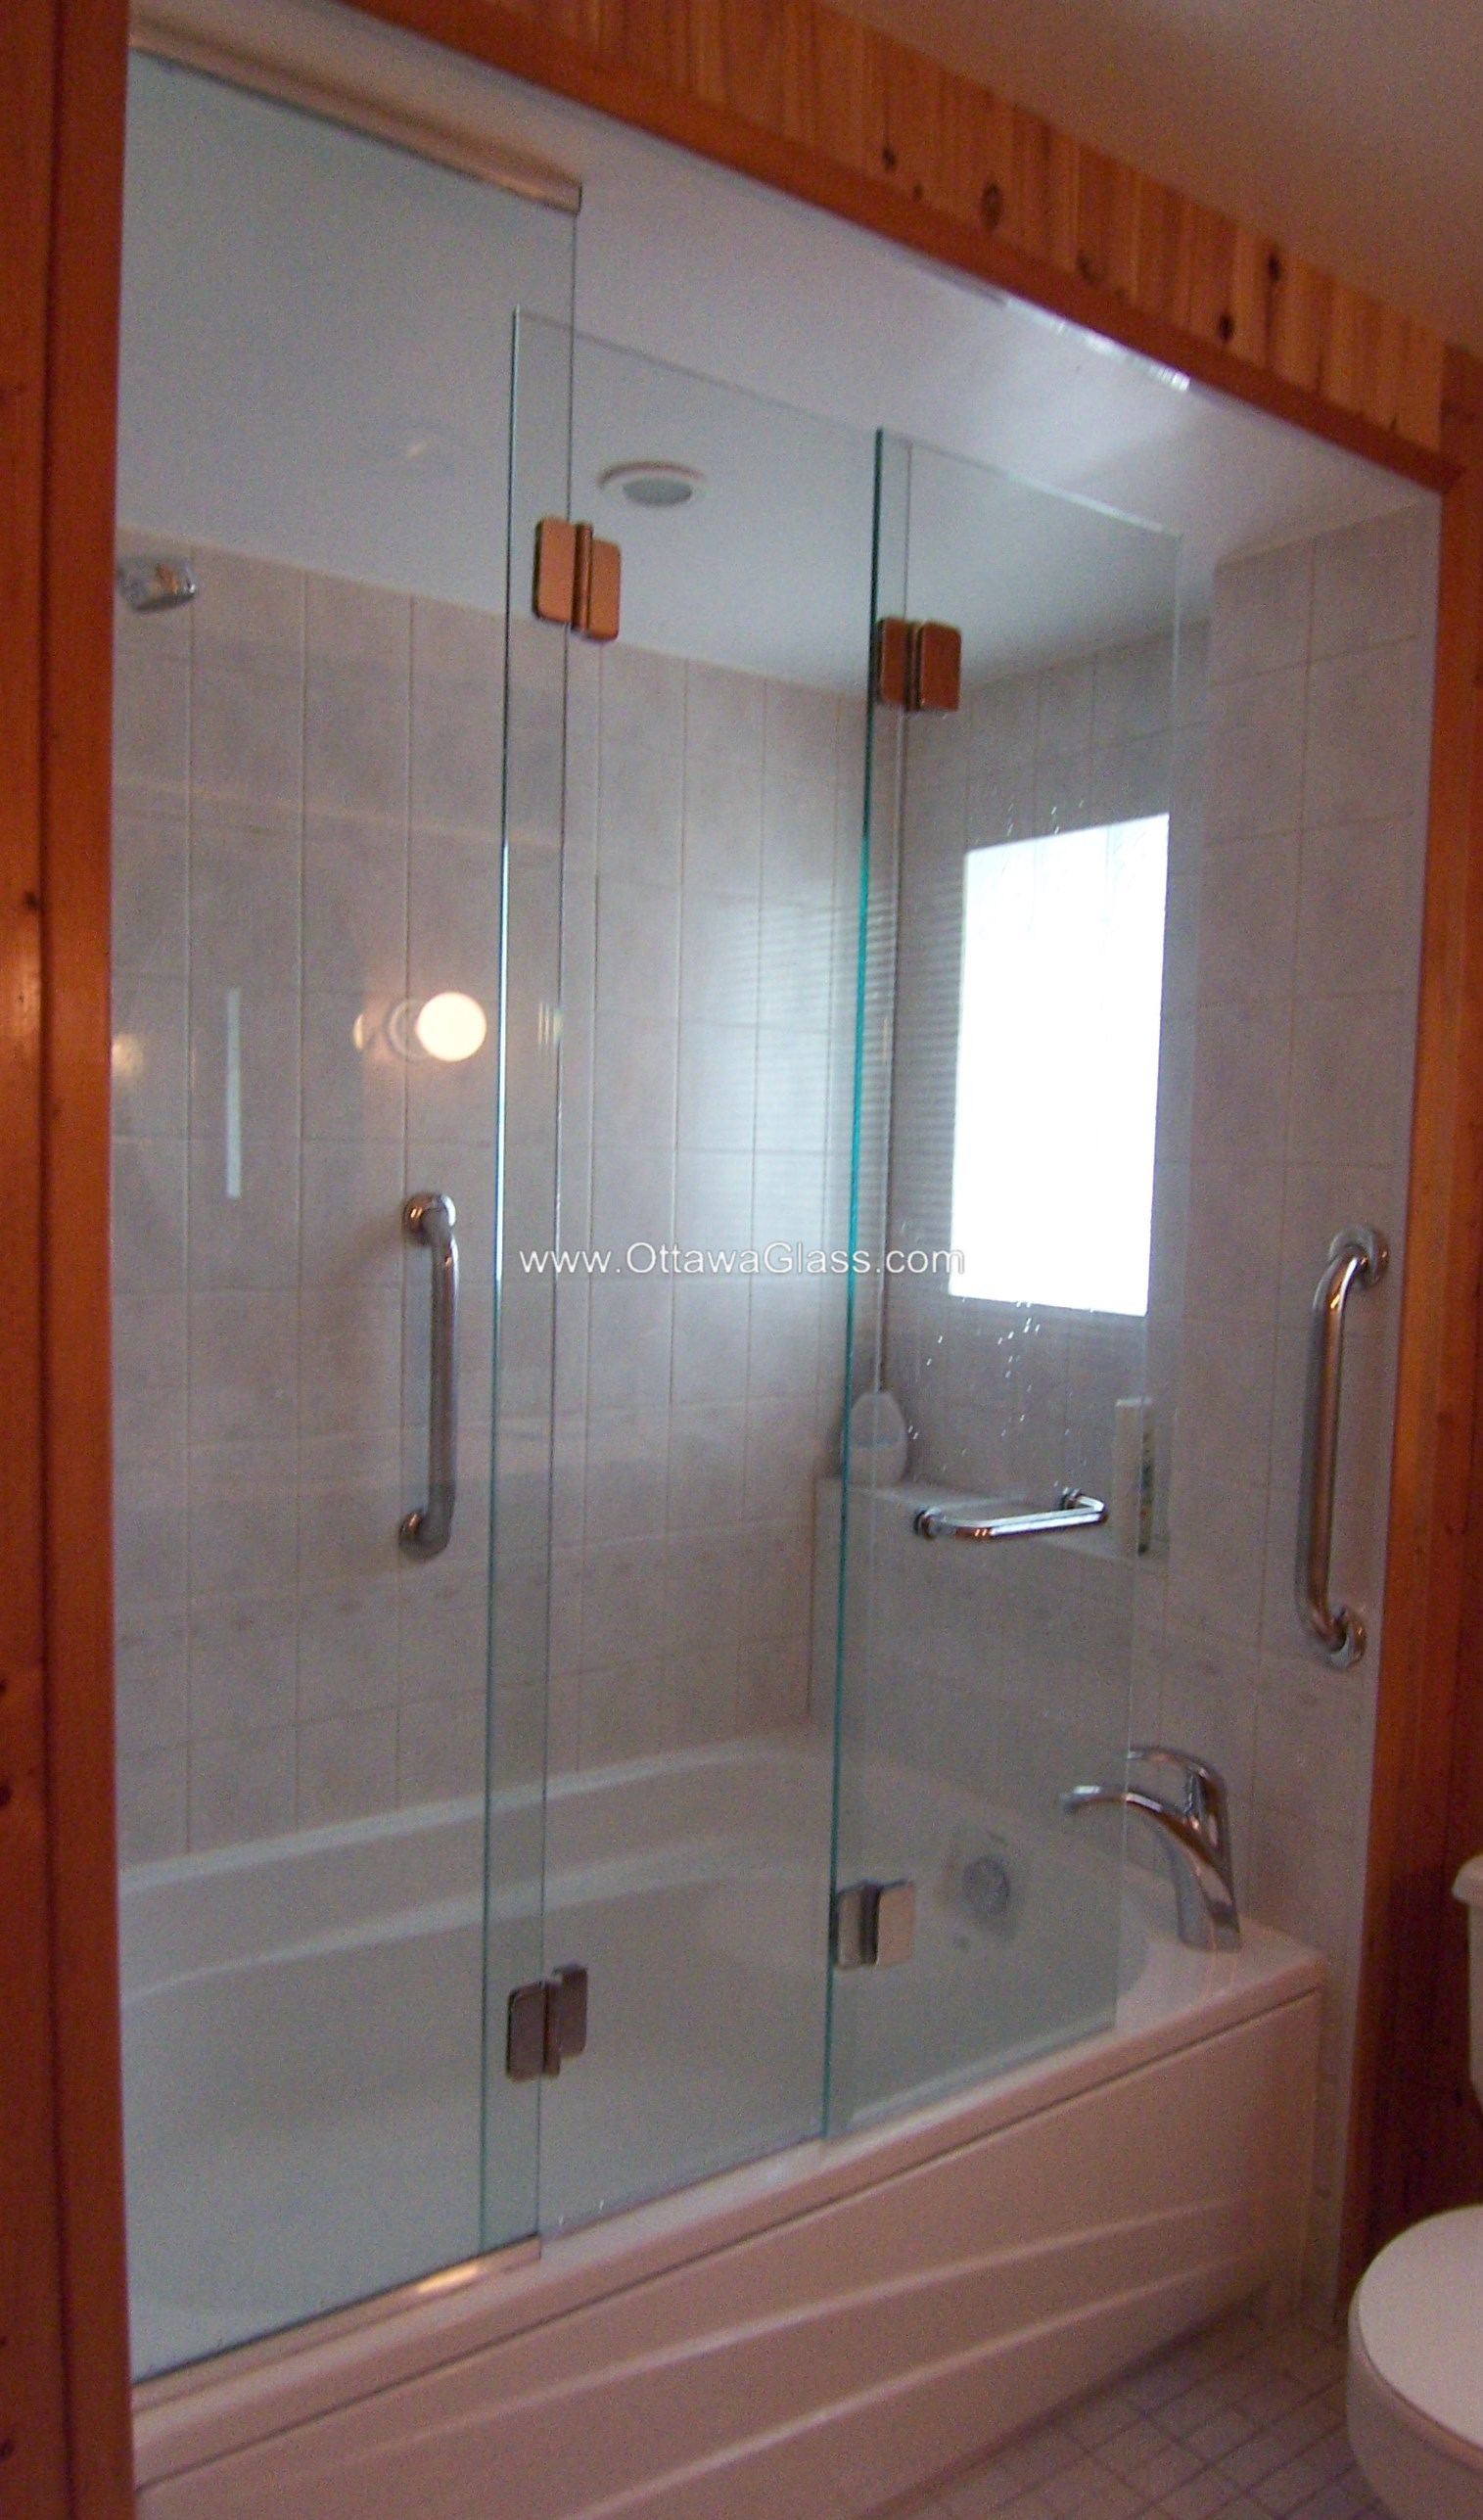 different shower of tub designs door doors glass types sliding